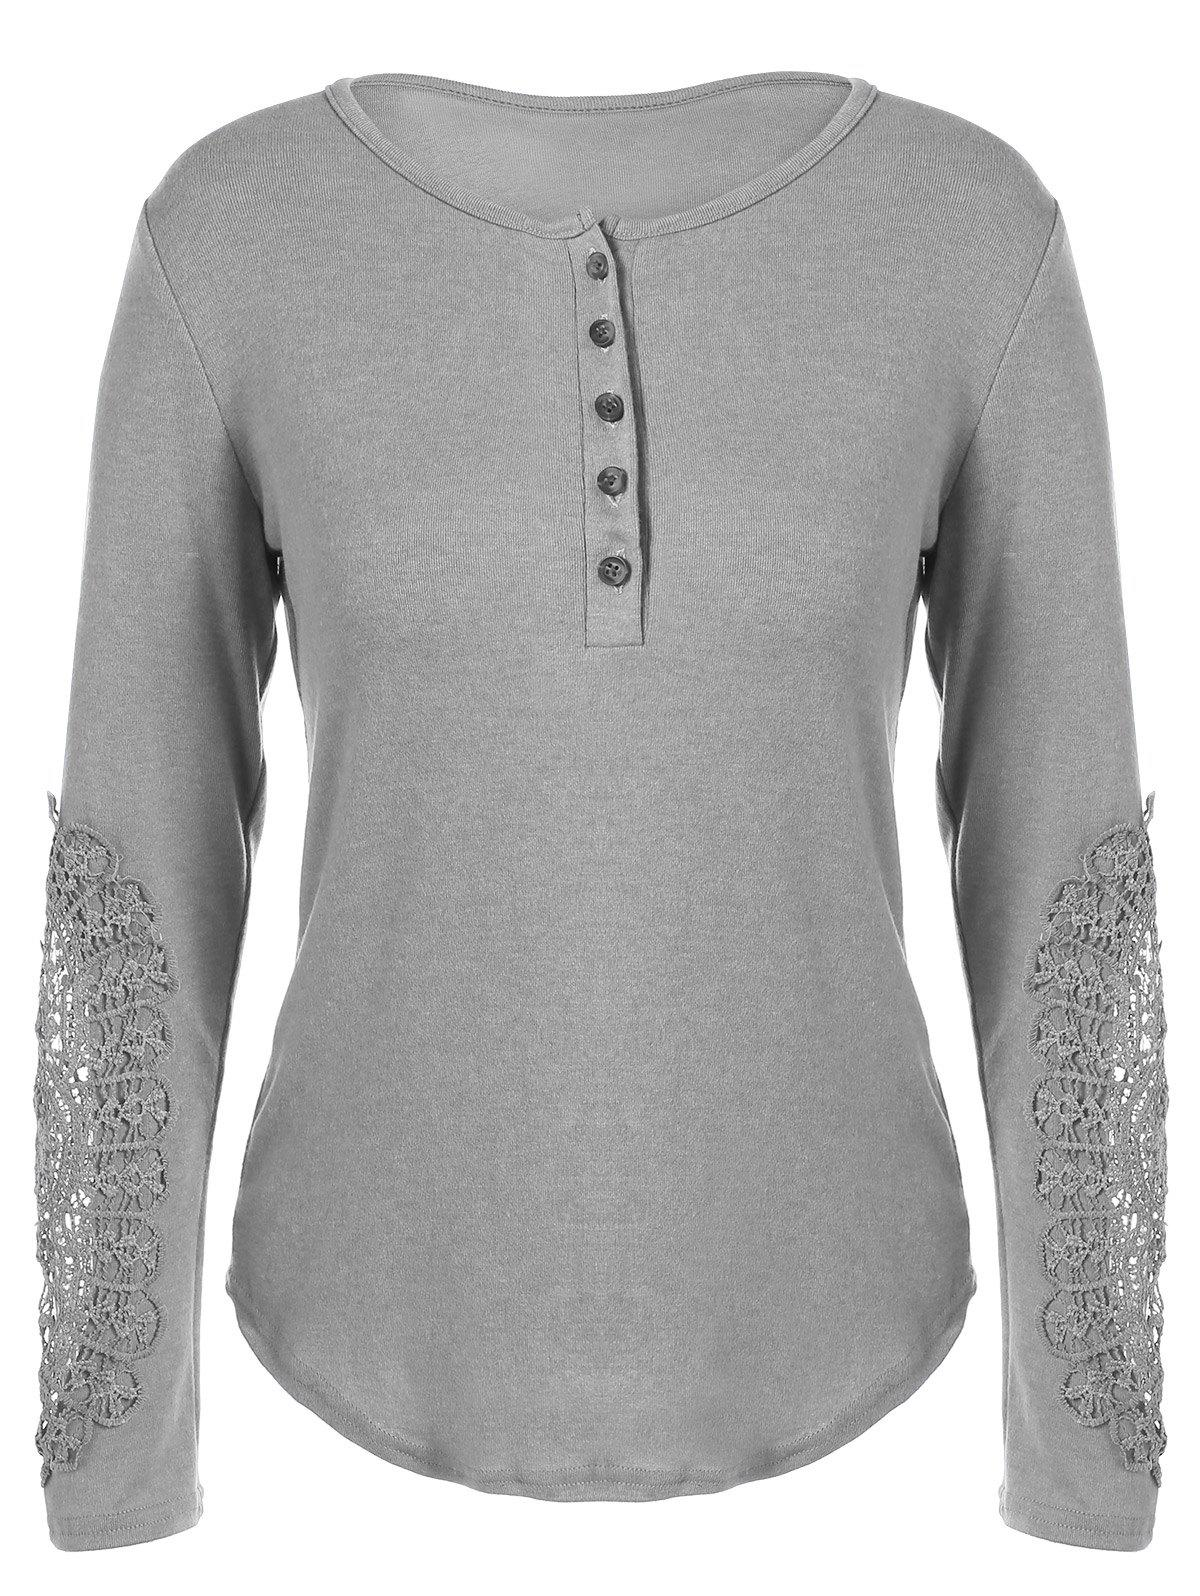 5d0a9fafde0e7 54% OFF   2019 Concise Openwork Lace Buttons T-shirt